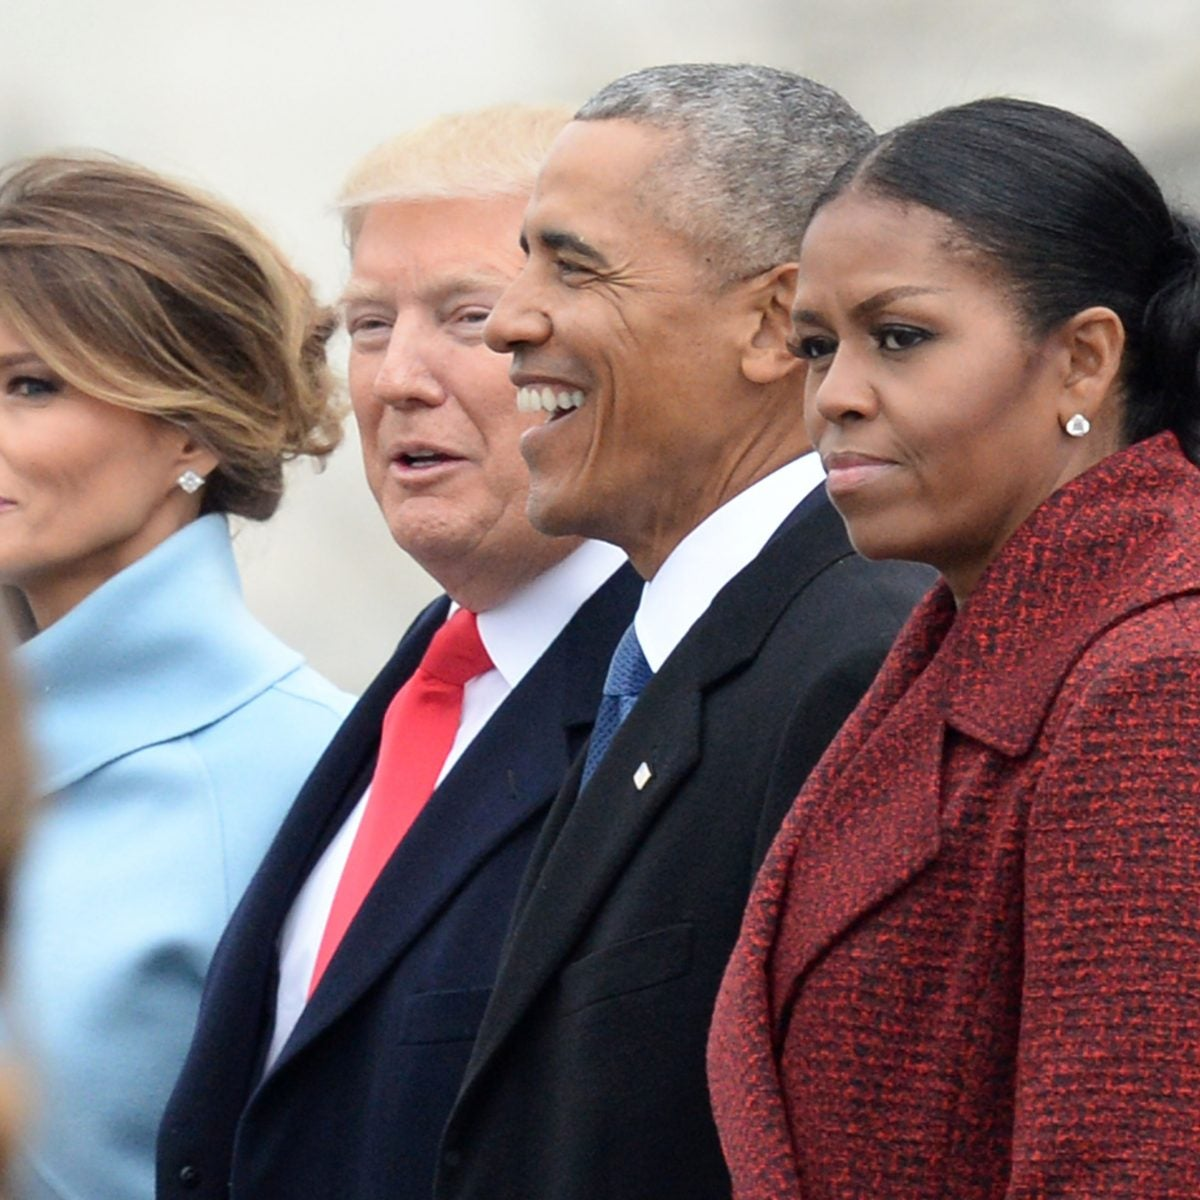 Michelle Obama Says Trump Should Respect The Election Outcome: 'This Isn't A Game'